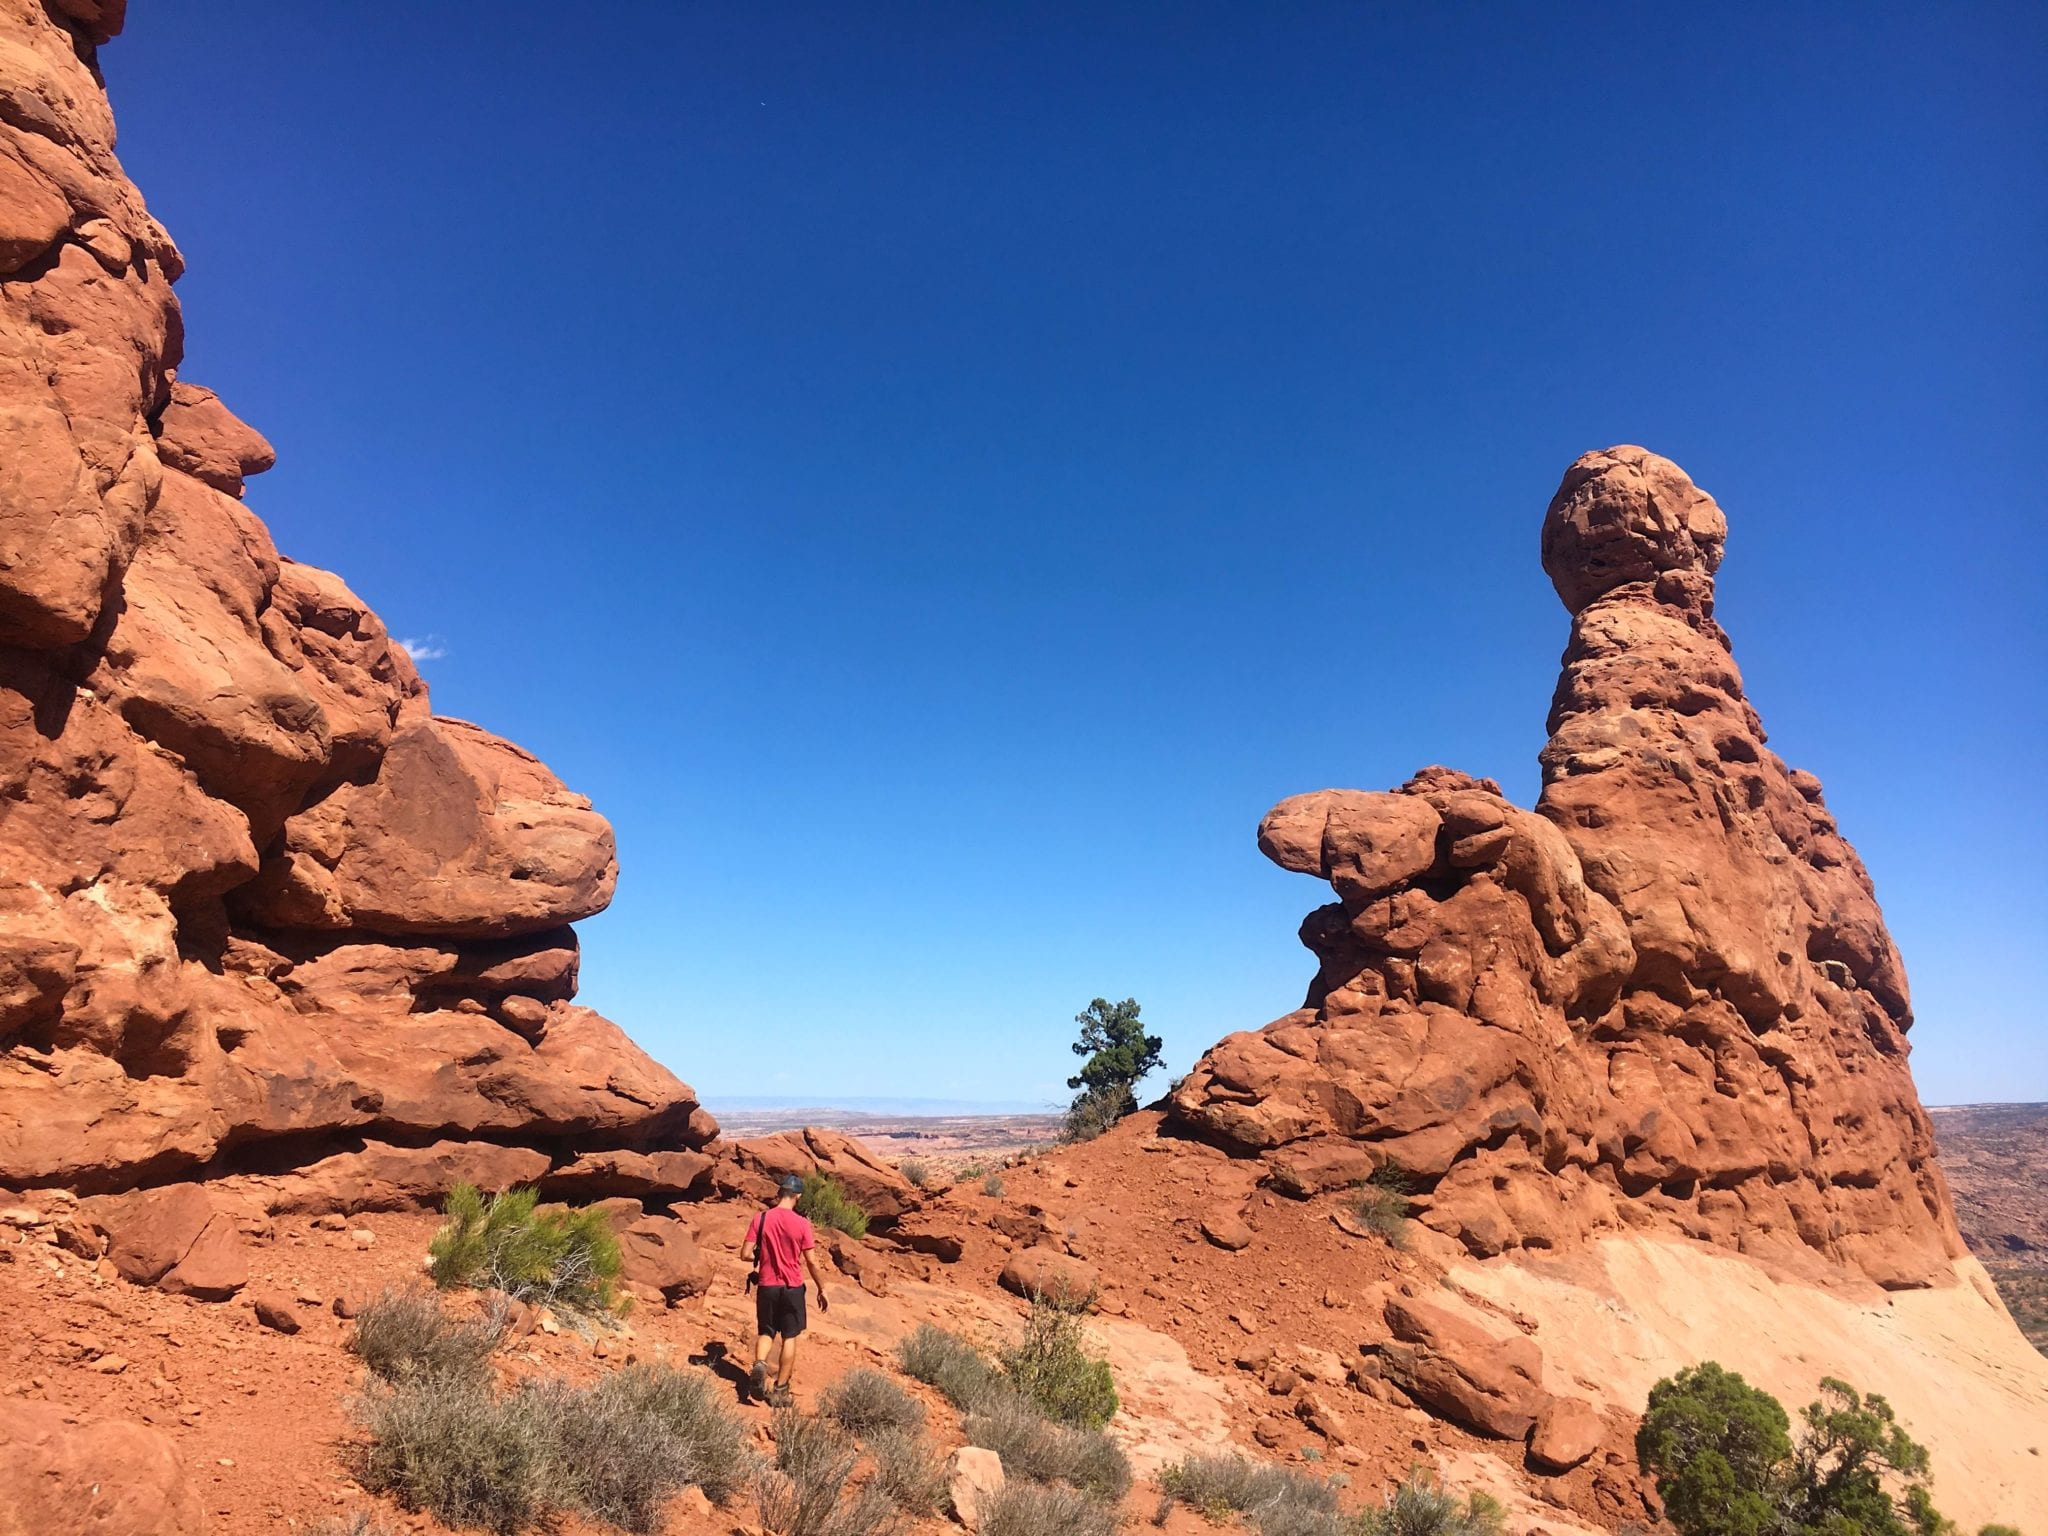 Hiking through Arches National Park